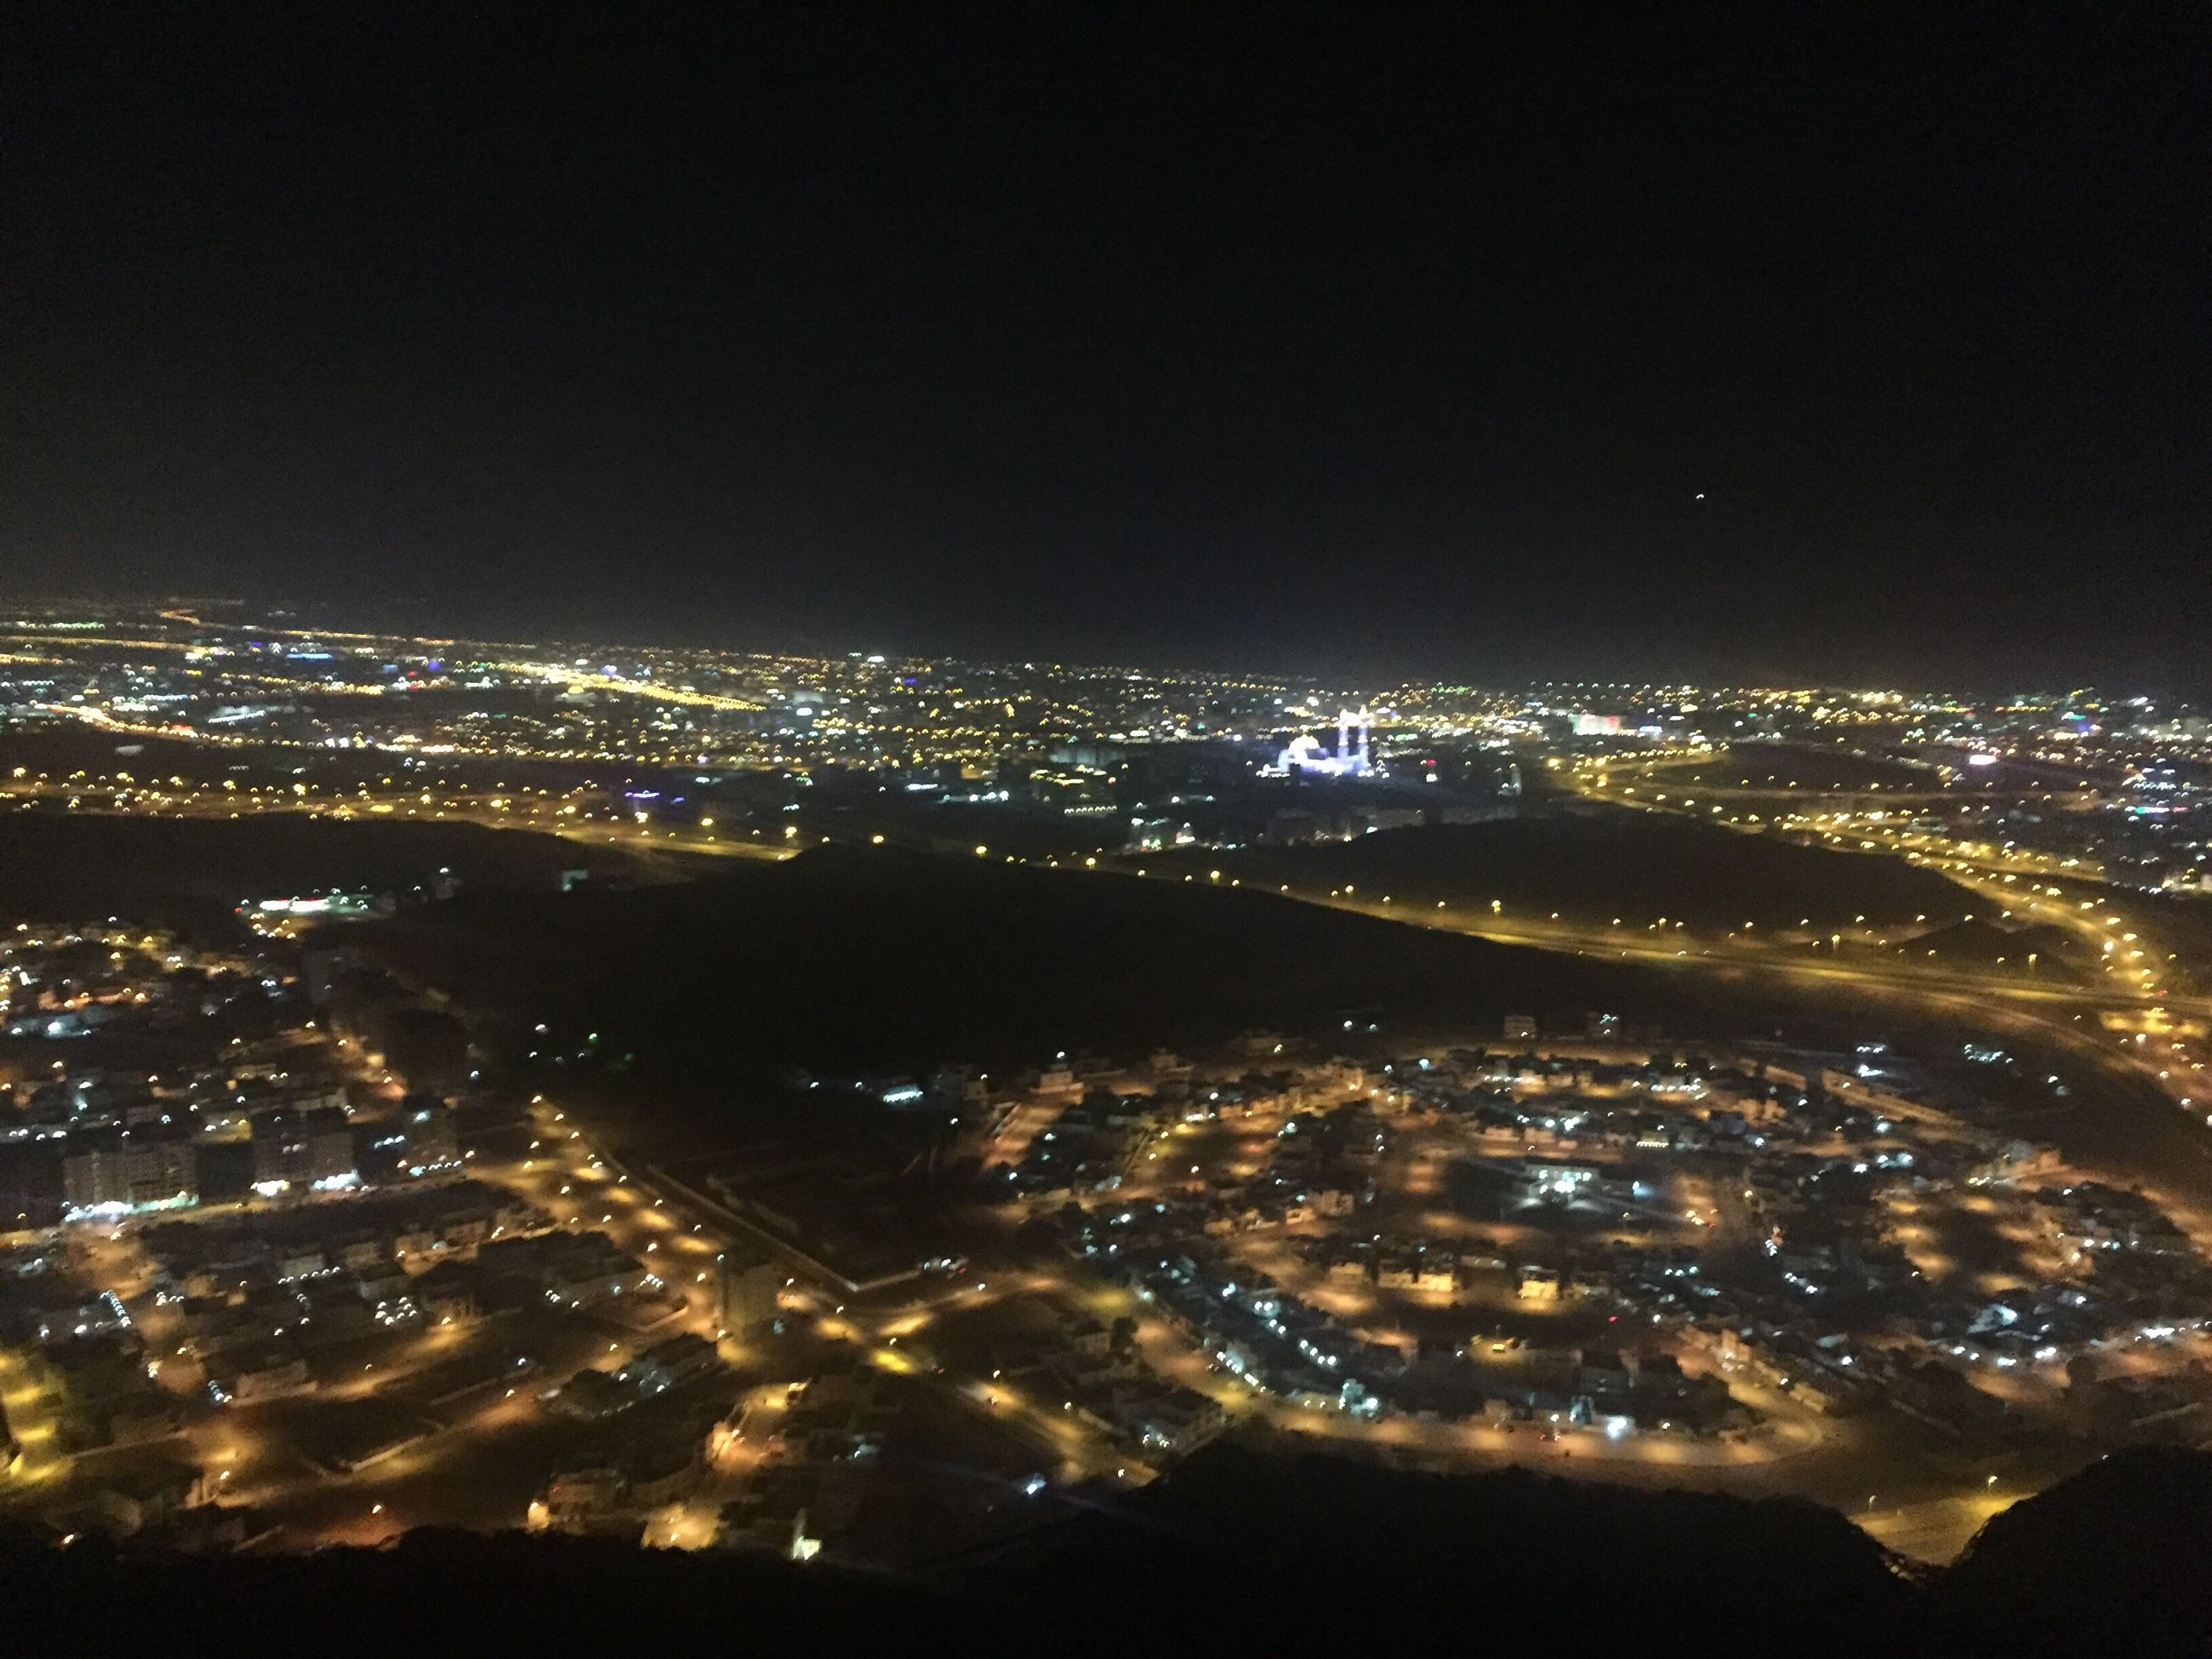 cityscape, night, illuminated, city, aerial view, building exterior, no people, outdoors, travel destinations, sky, architecture, water, urban skyline